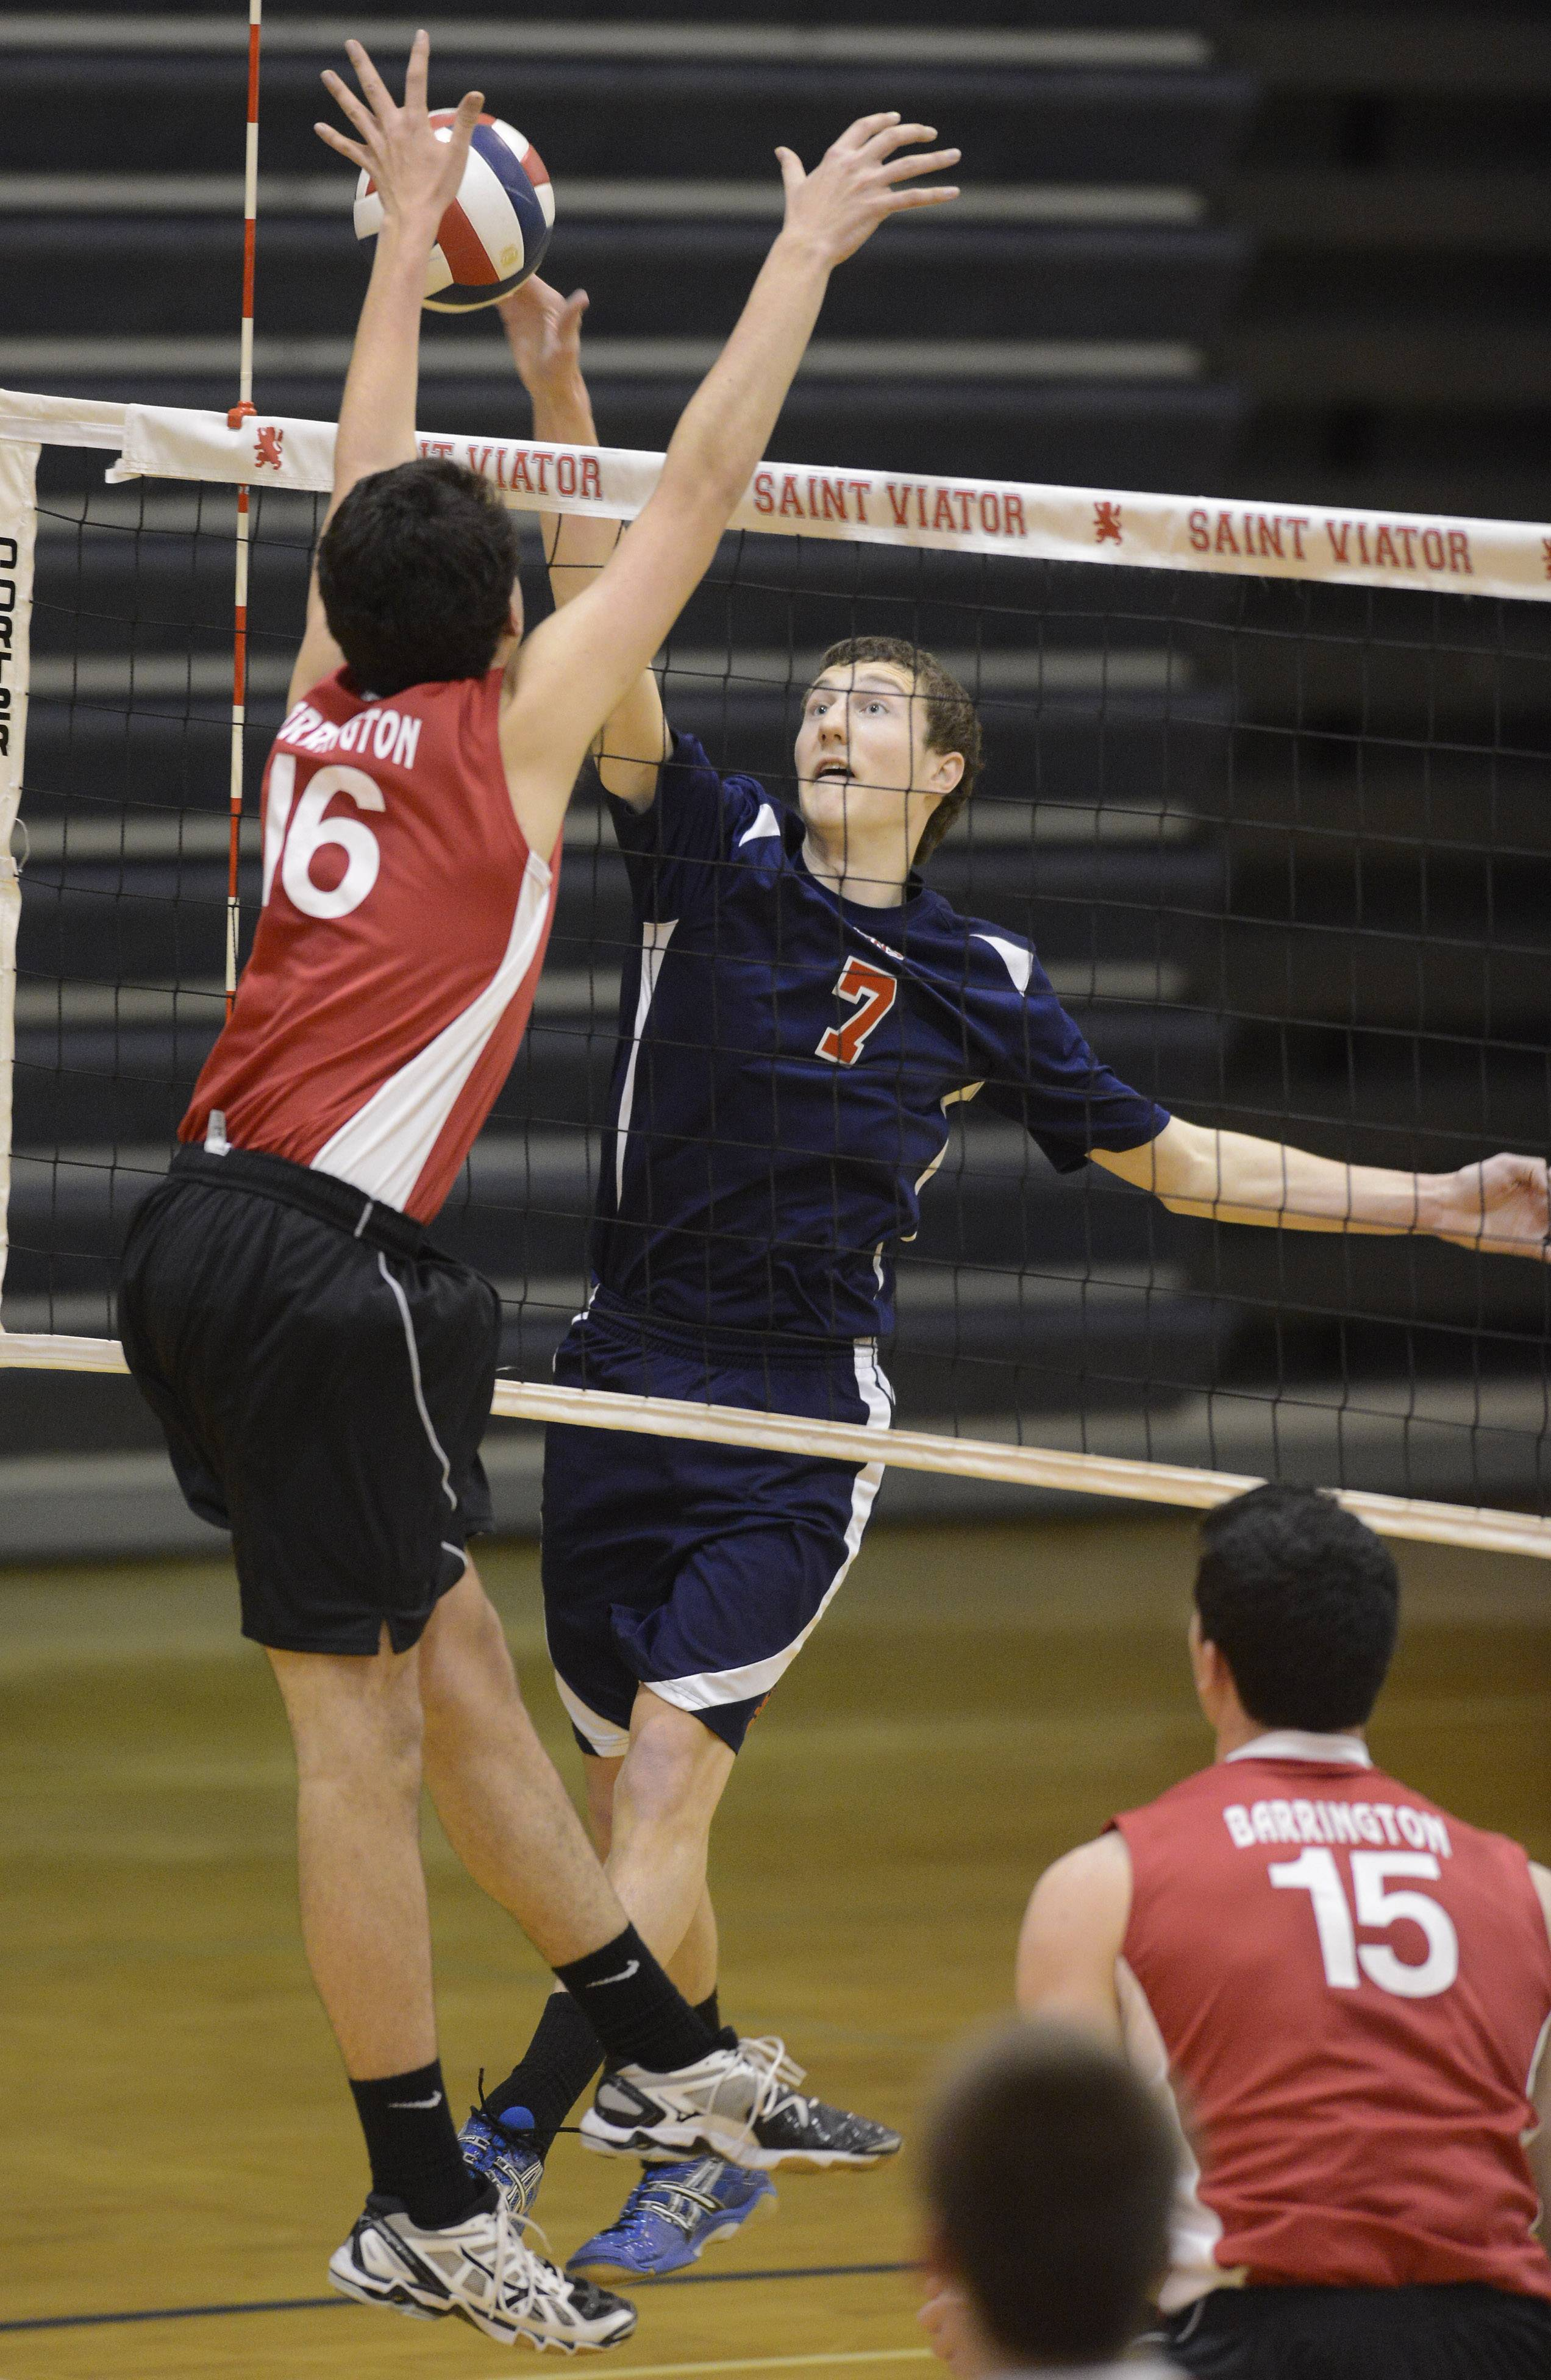 St. Viator's Ethan Wolf, right, tries to get the ball past Barrington's Mike Amato during Tuesday's boys volleyball game in Arlington Heights.